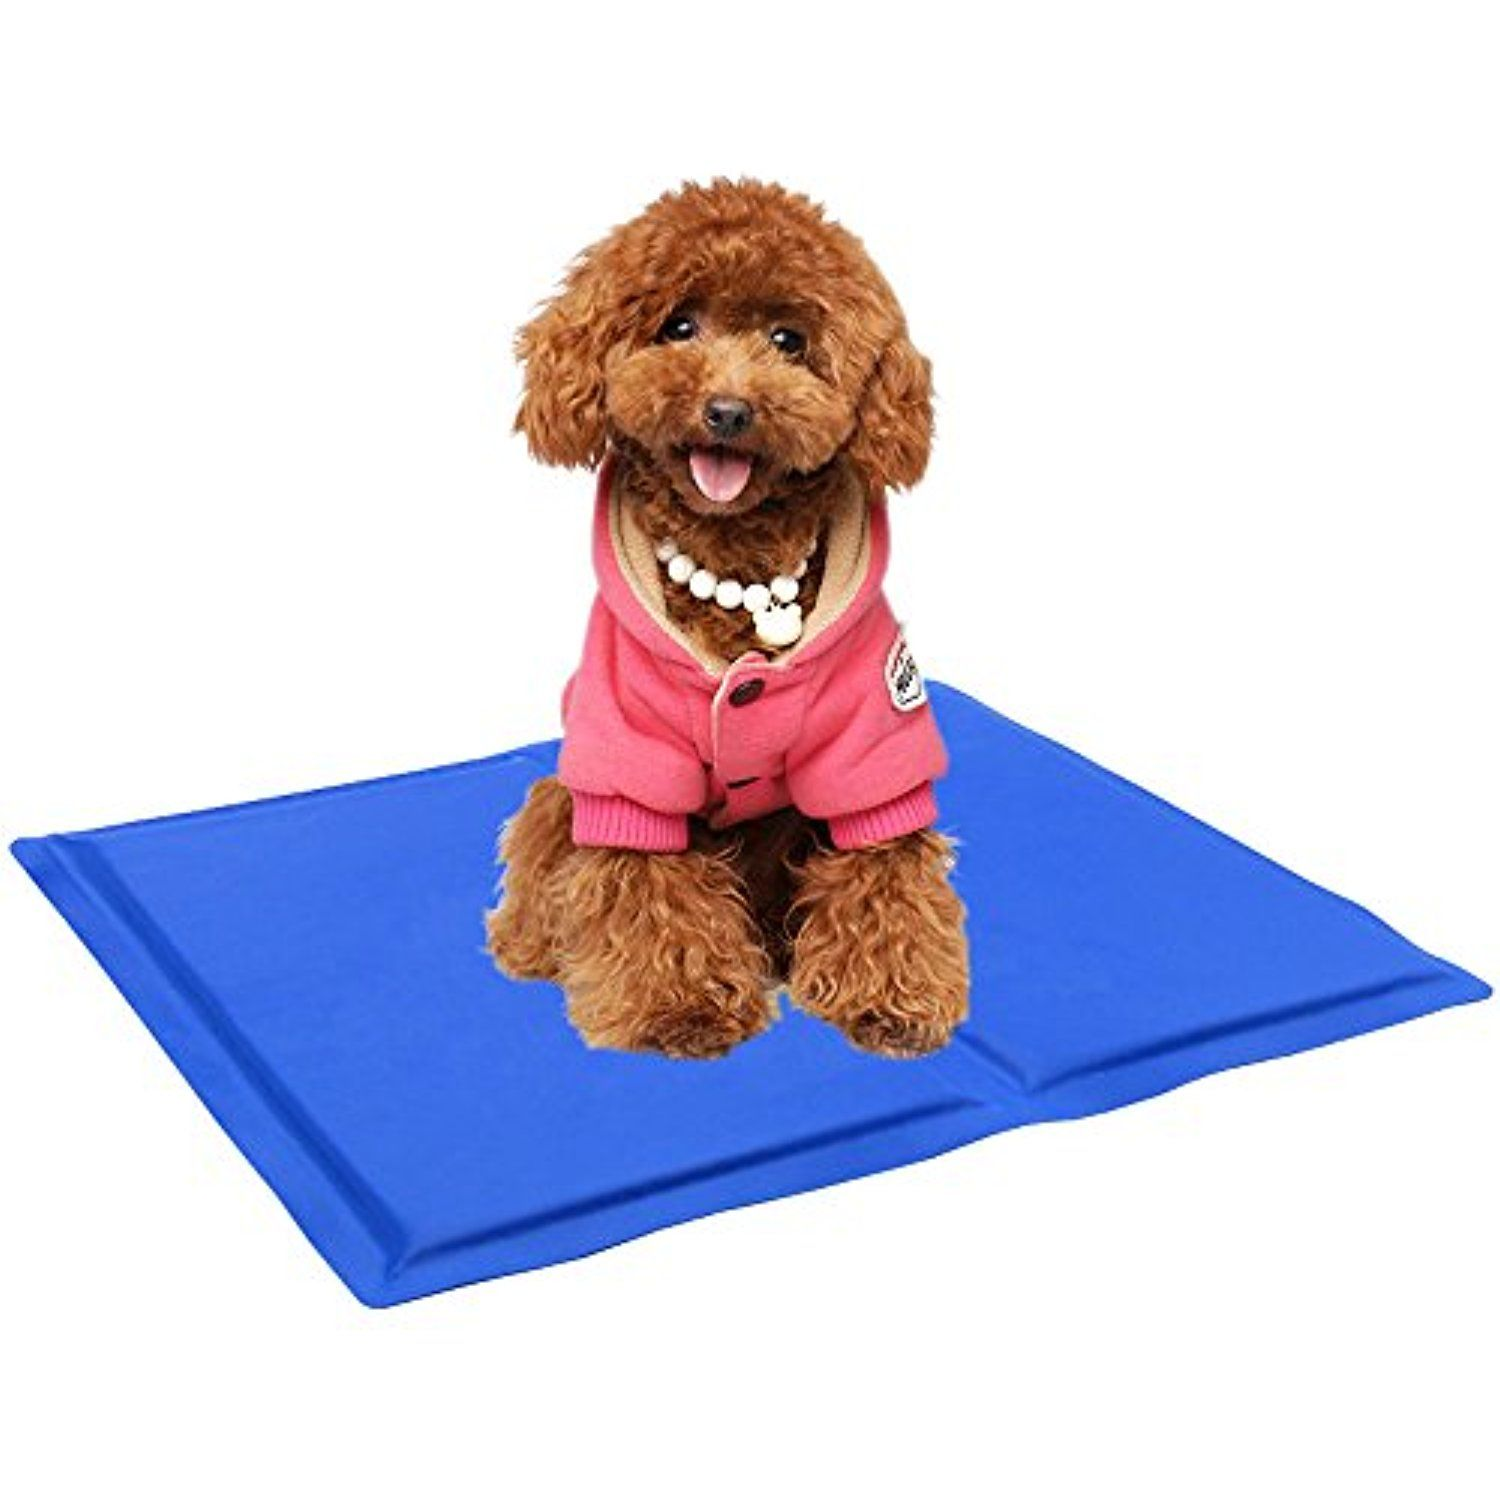 mats pet cool the your keep kandh dog for dogs find cooling best elevated to bed